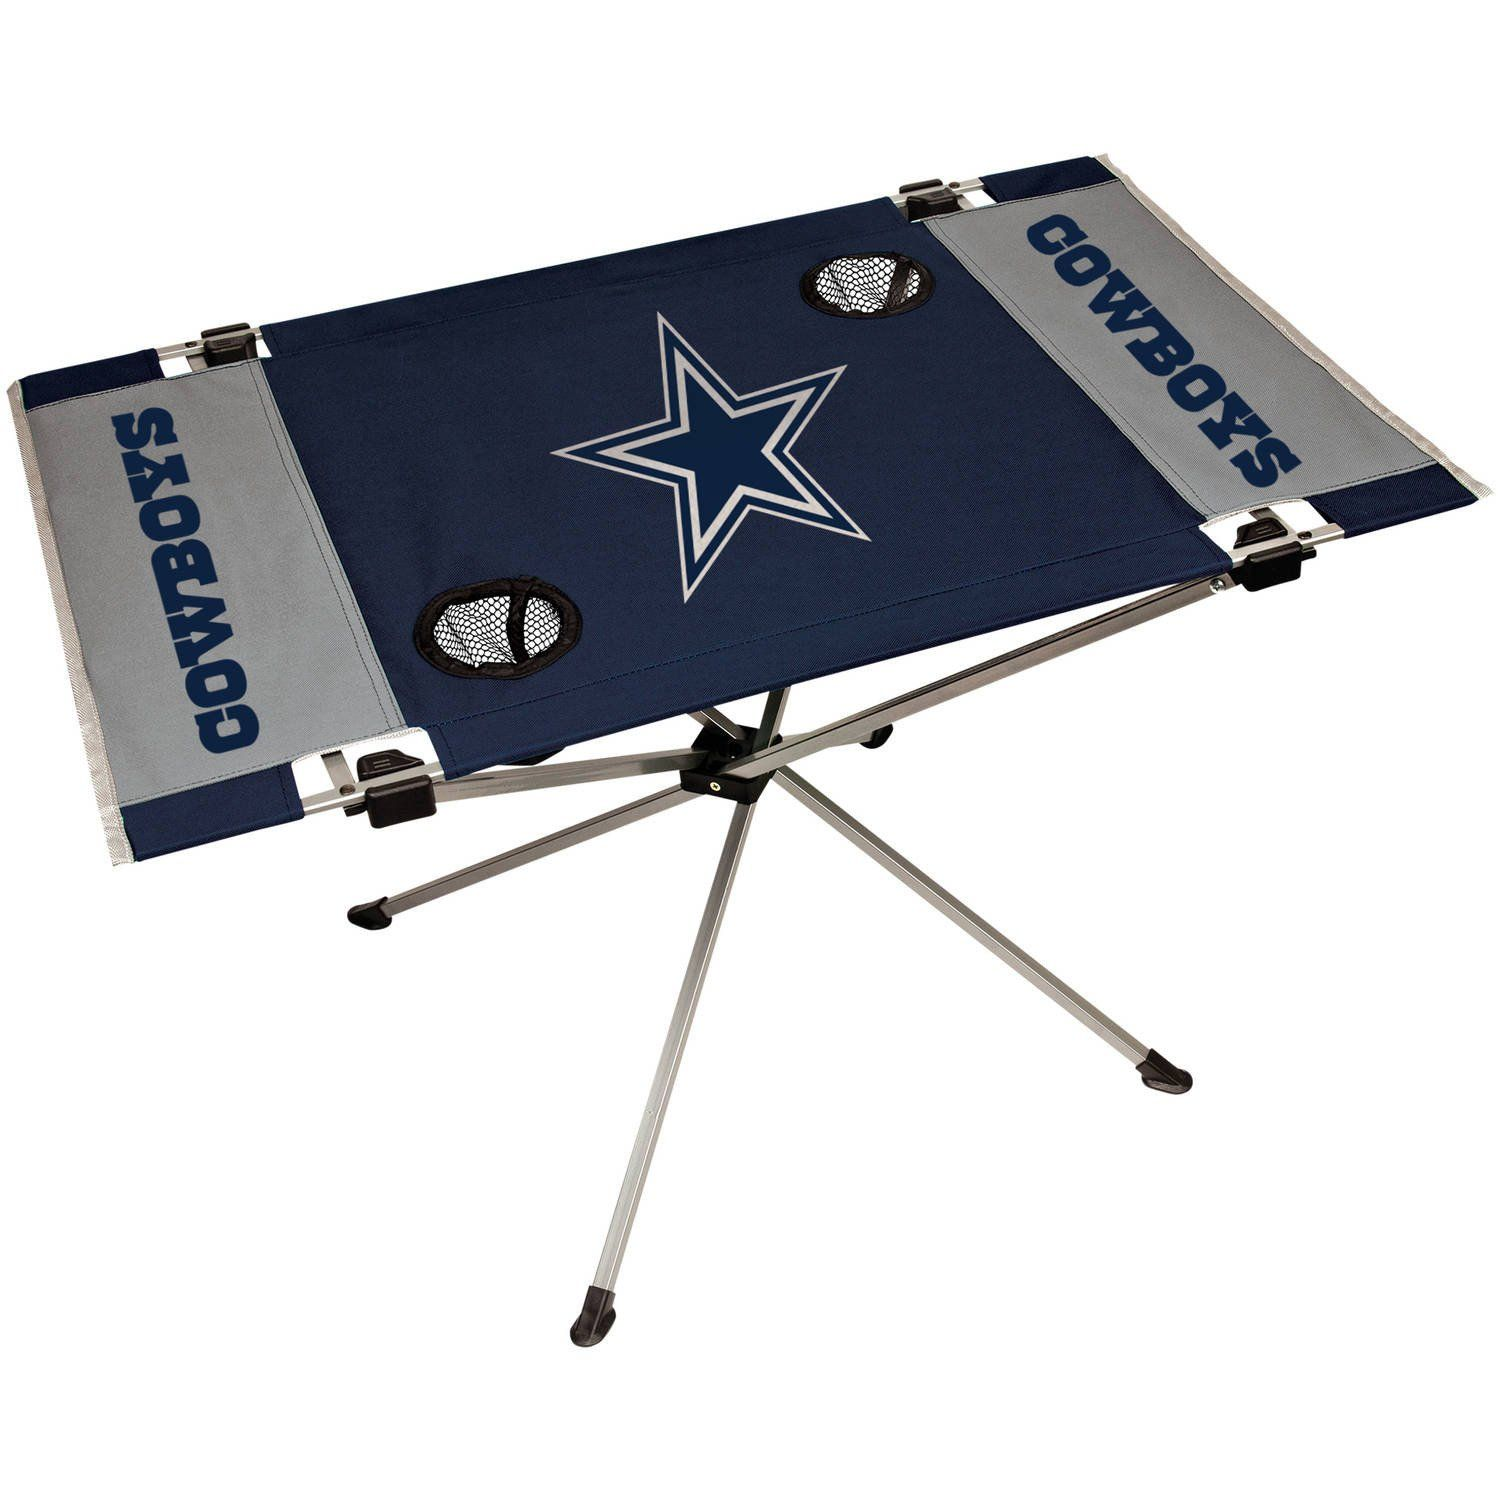 Cowboys NFL Table Endzone Style Table - Rawlings